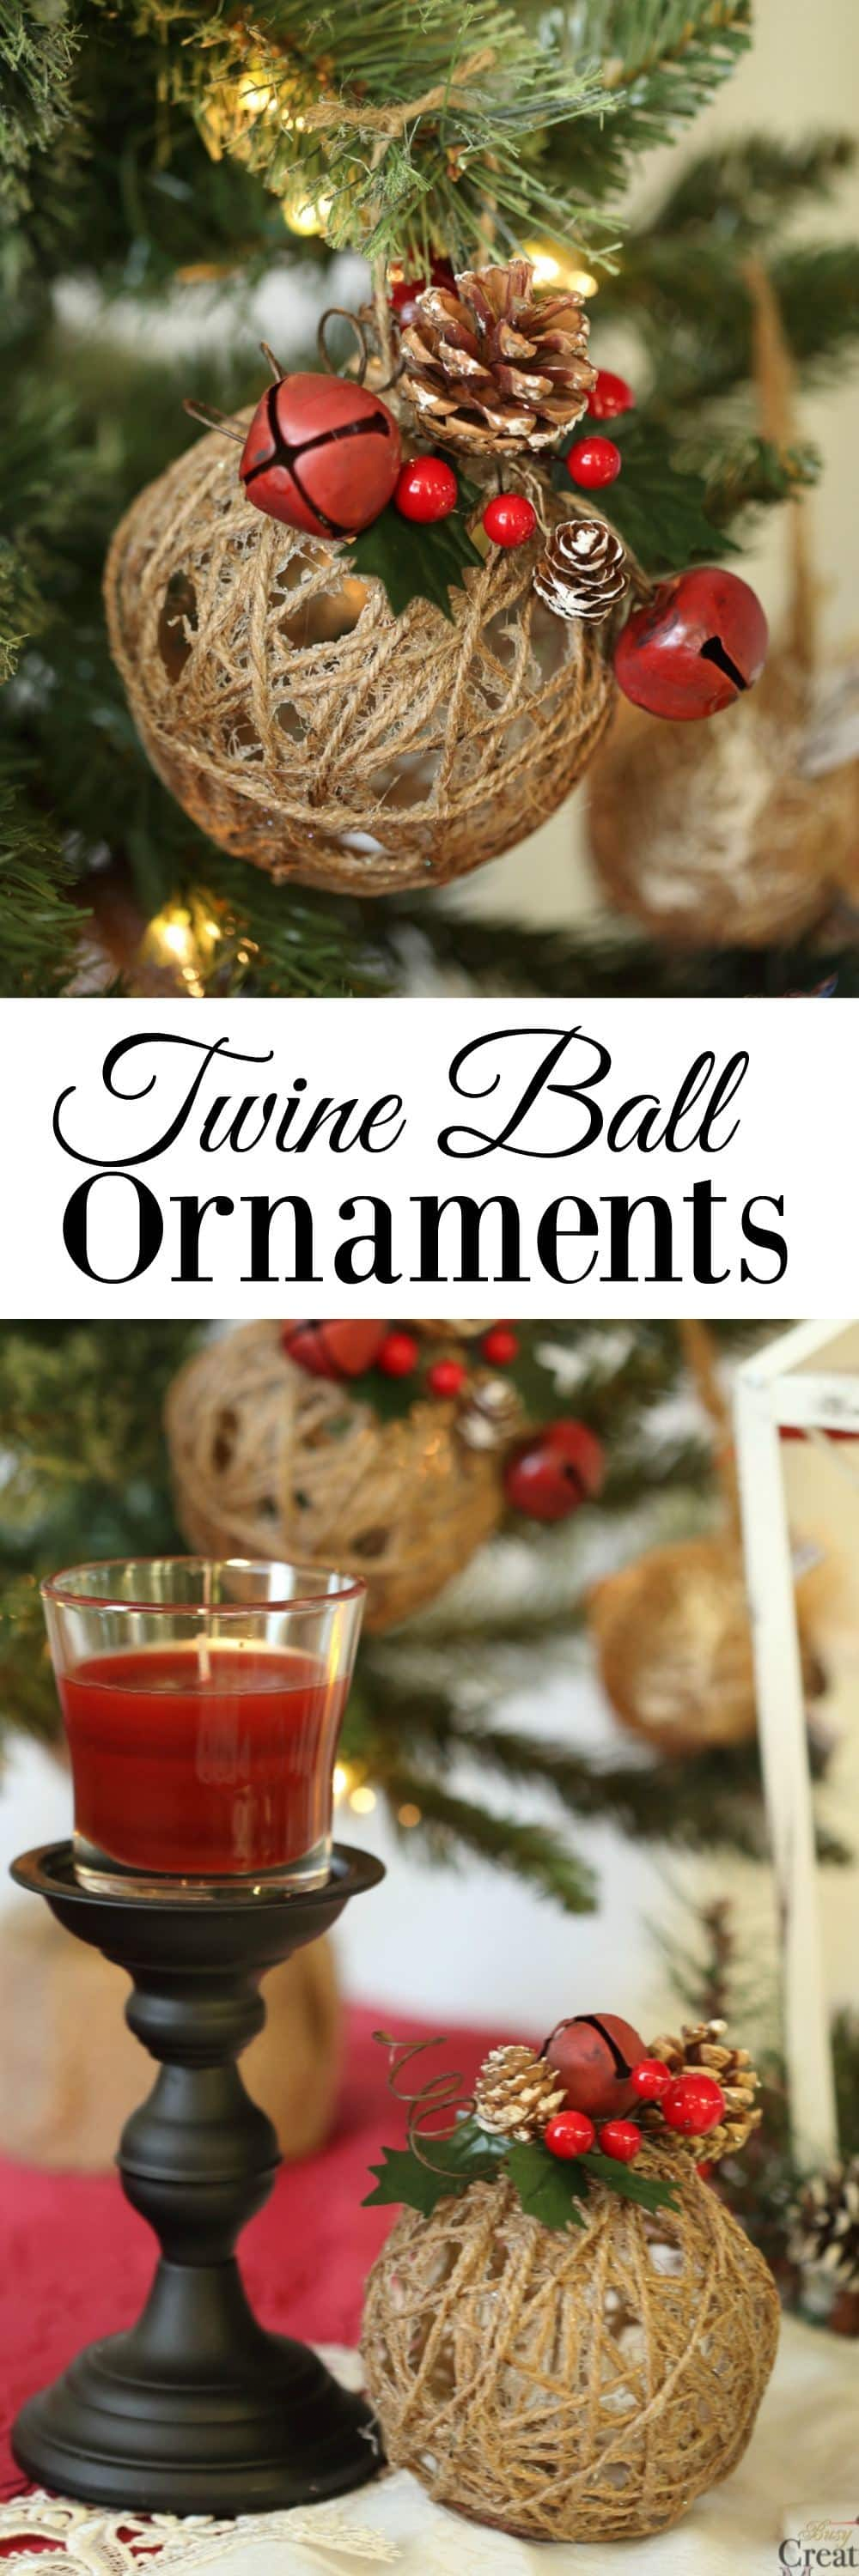 Bring a Holiday atmosphere to your home by creating Rustic Christmas Ornaments with this tutorial for Glitter Twine Ball Ornaments.